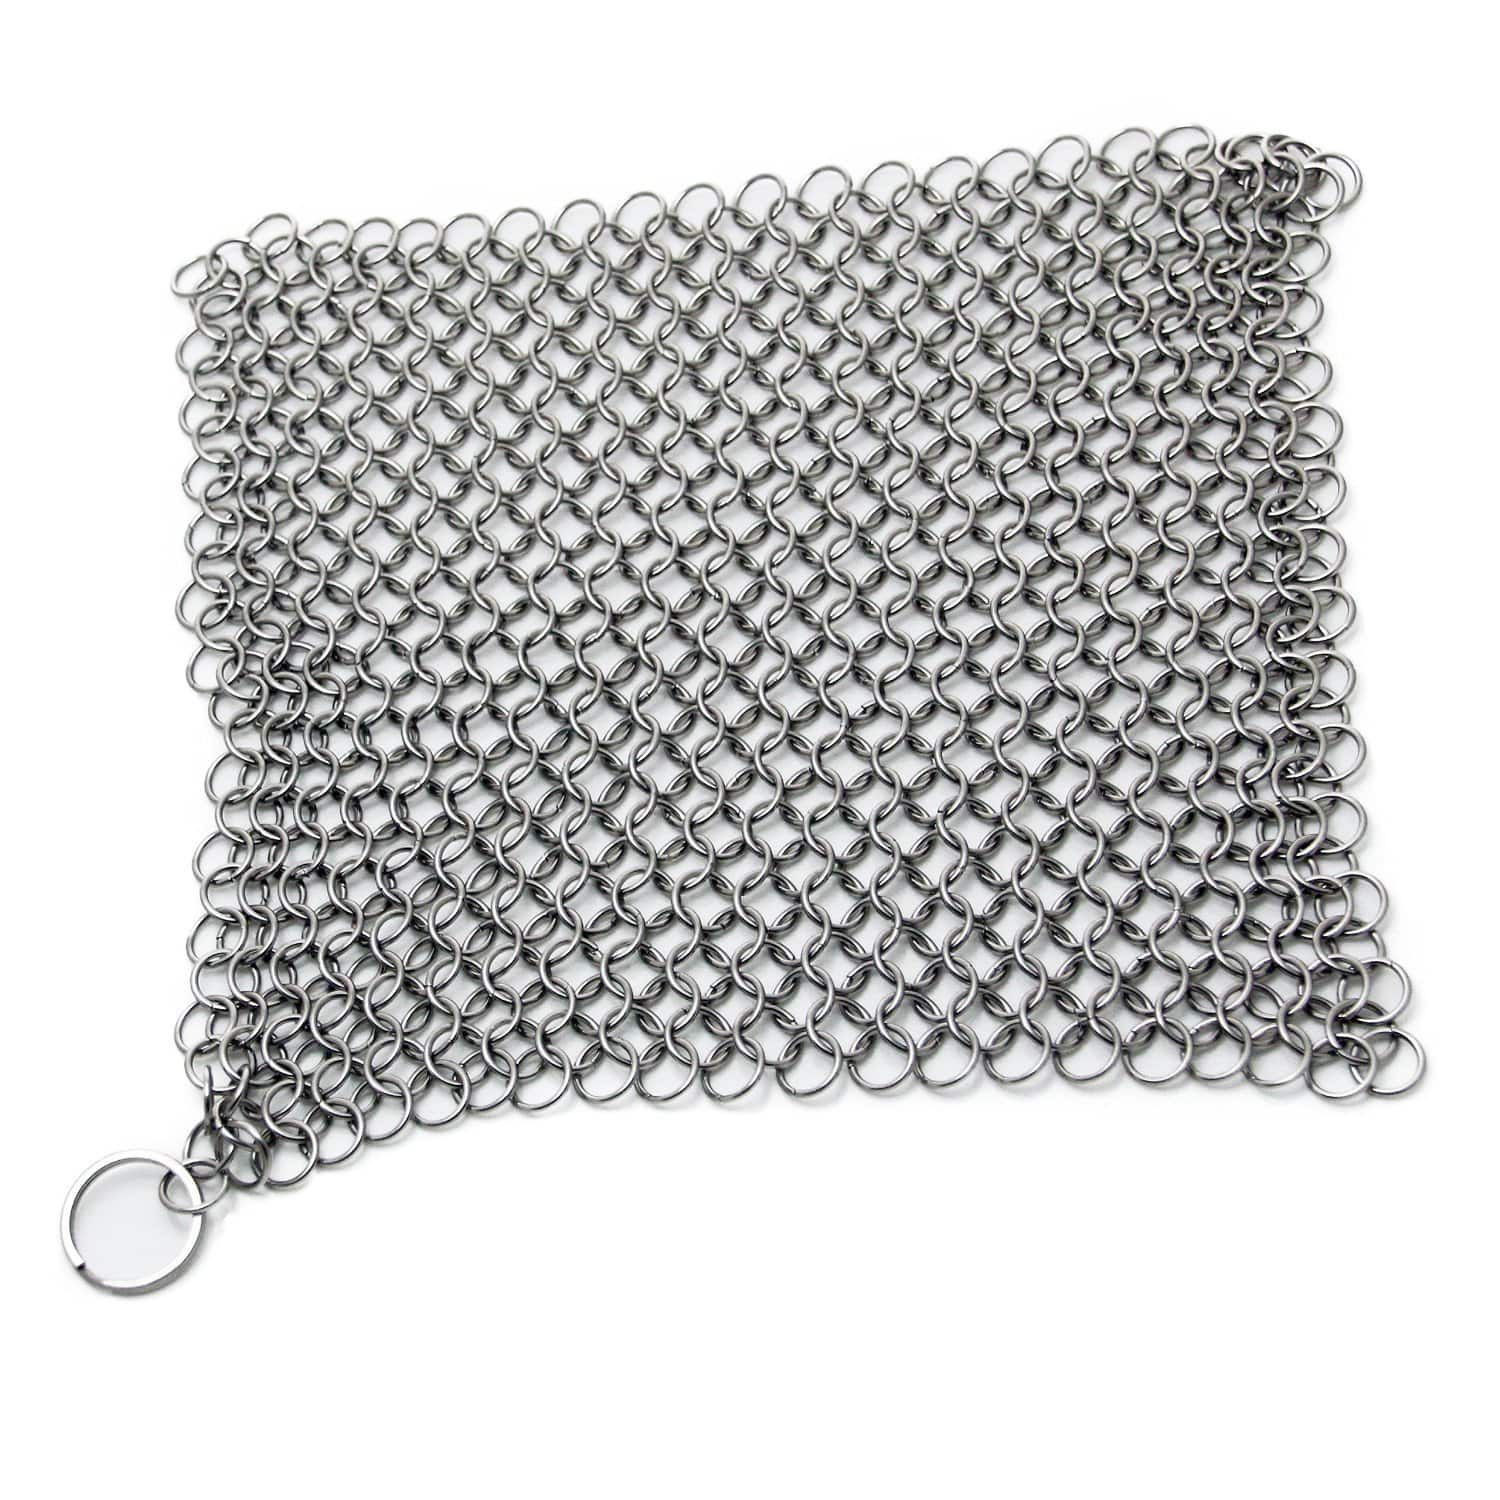 """8""""x6"""" Stainless Steel Cast Iron Cleaner for $6.92 + Free Shipping"""